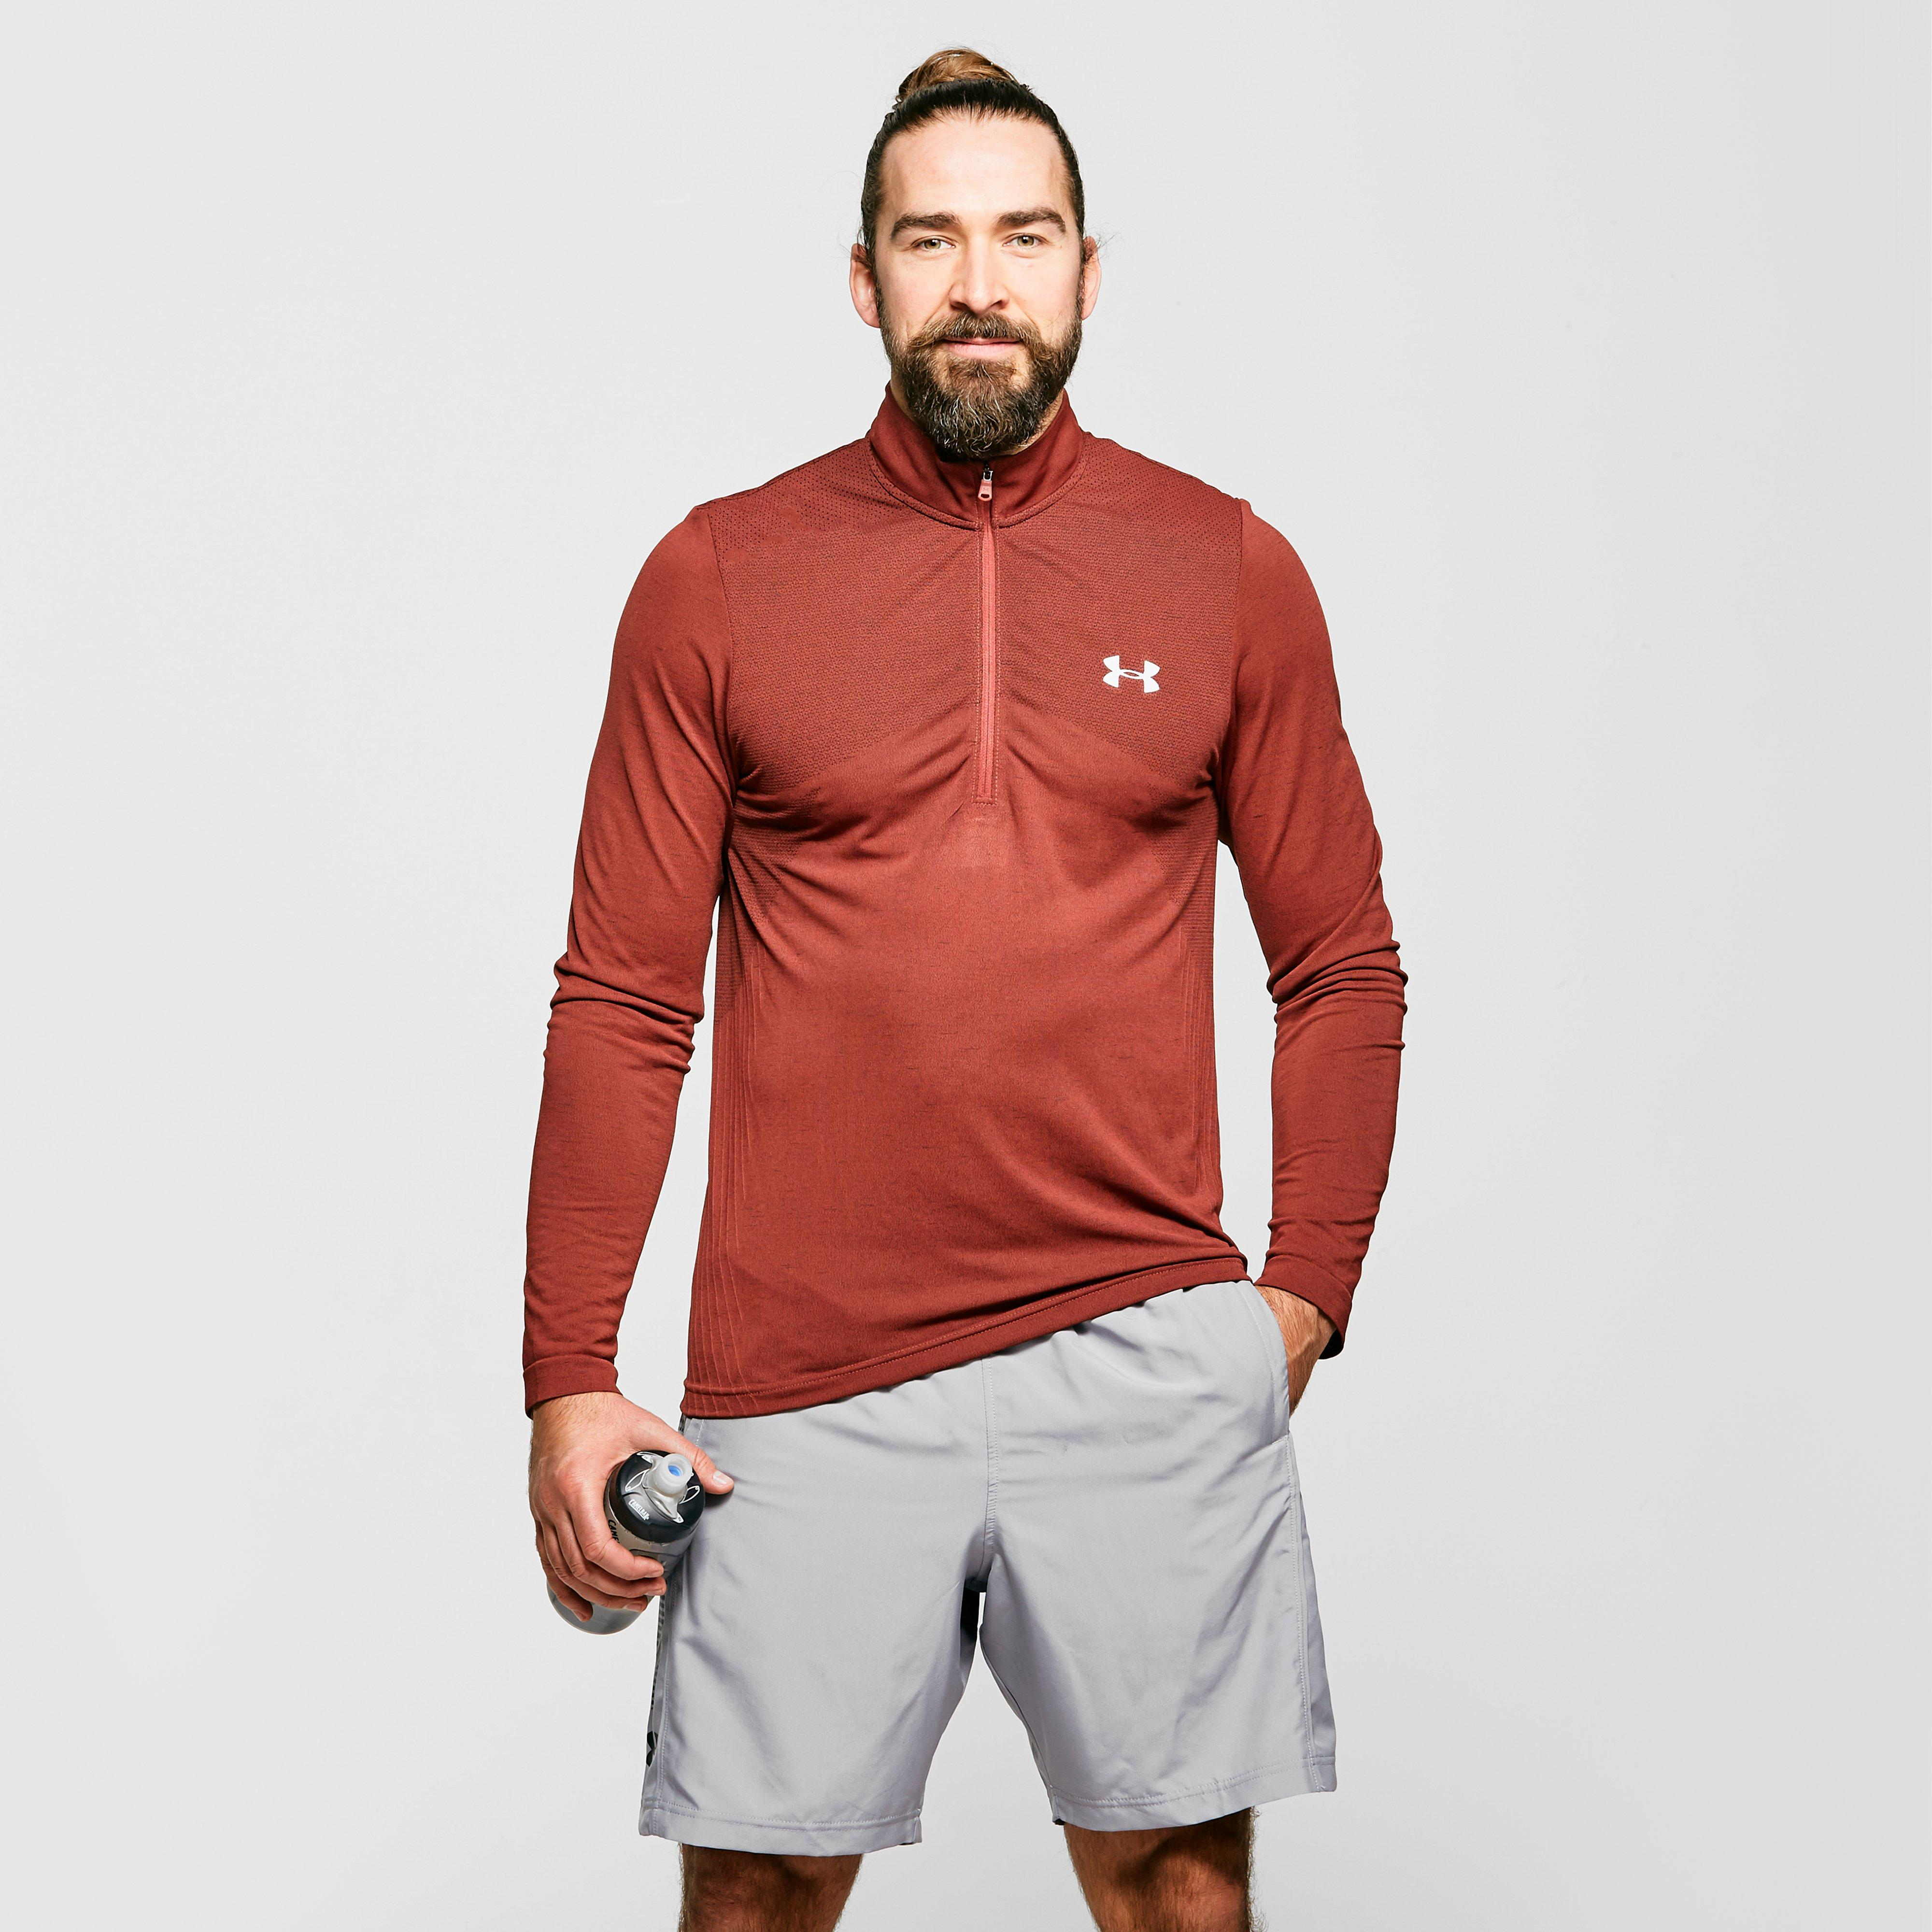 Under Armour Men's Ua Seamless Long Sleeve Zip Tee - Red/Drd, Red